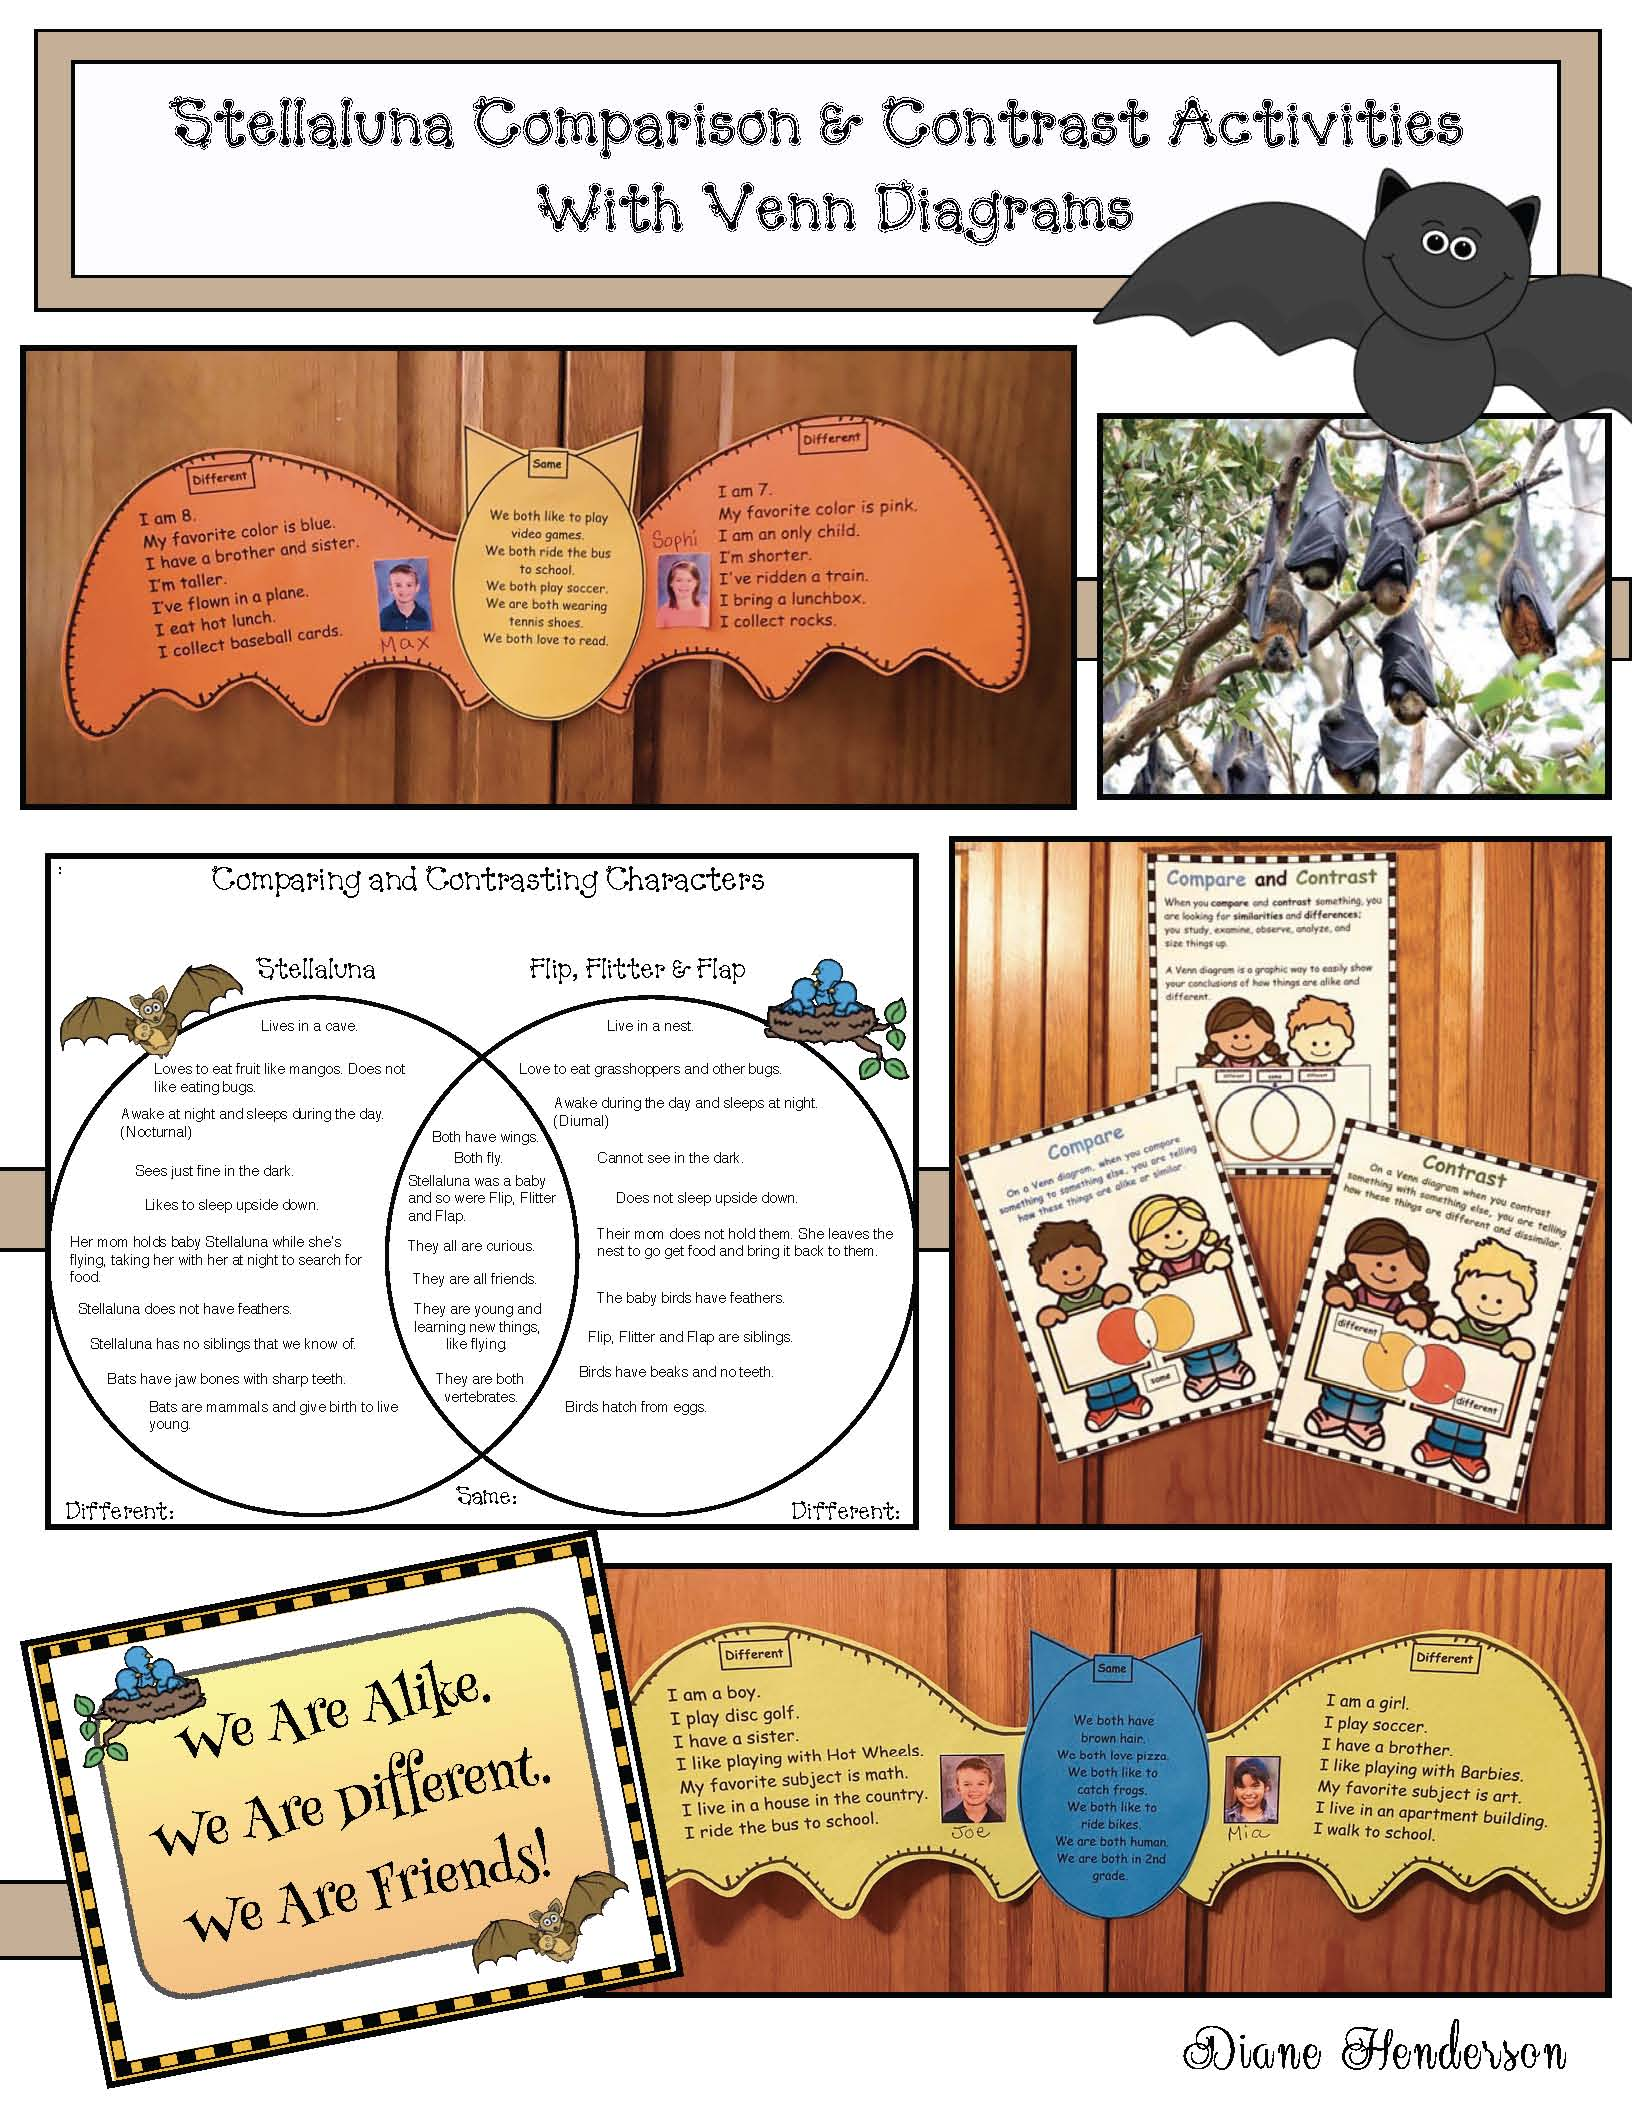 Stellaluna activities, bat craft, venn diagram, comparison & contrast writing, comparison & contrast posters, comparing Stellaluna with The Ugly Duckling